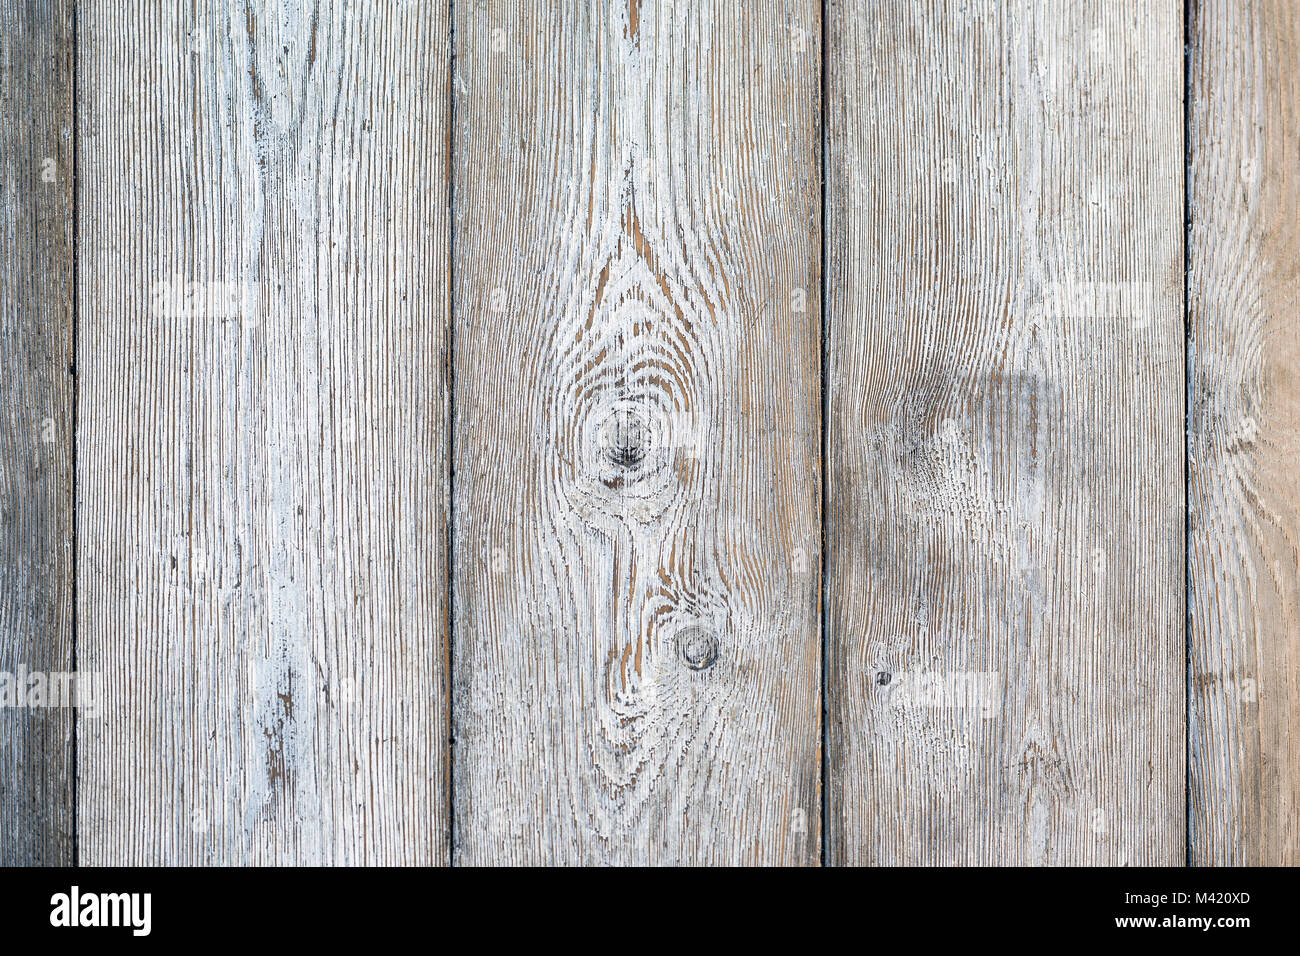 Vintage painted old wood planks with cracks, scratches and shabb - Stock Image